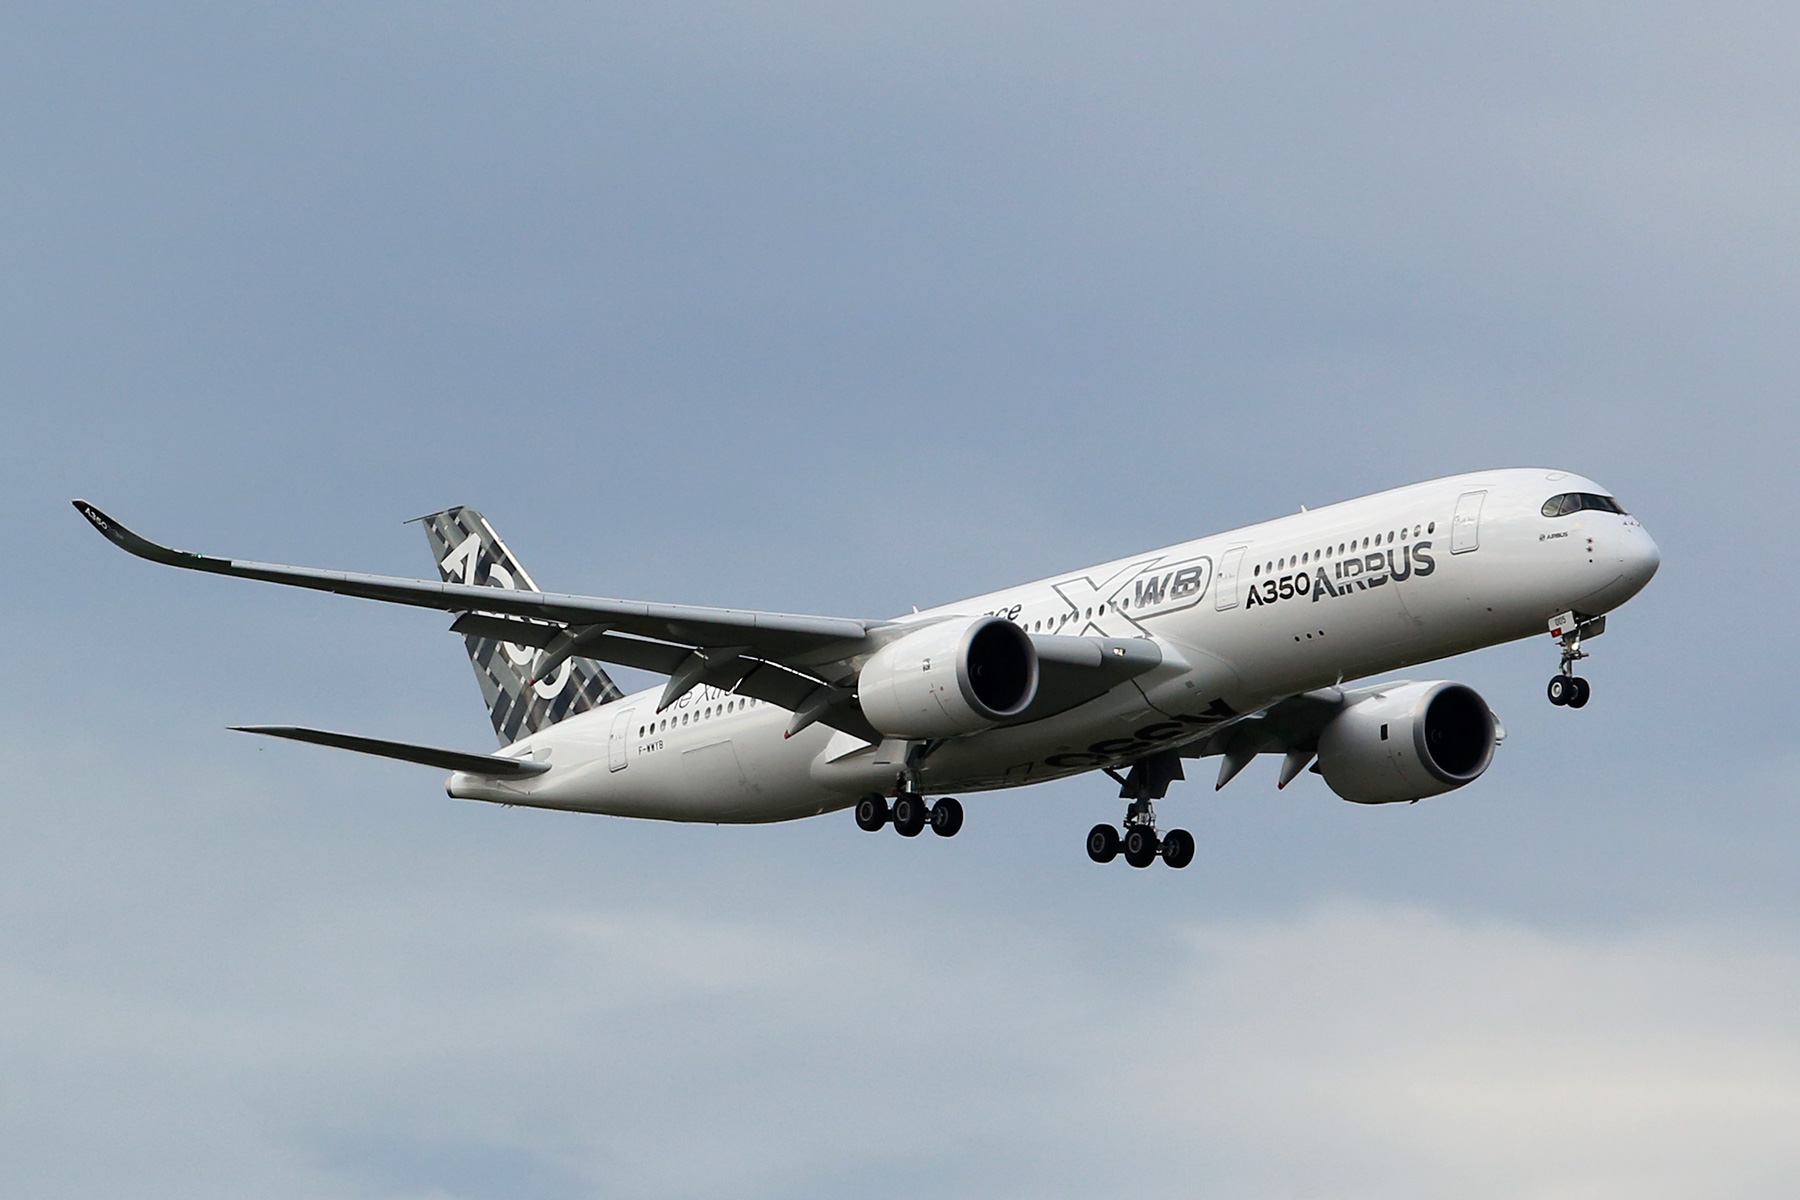 F-WWYB Airbus A350 at Perth Airport – Sunday 10 August 2014 On short finals to runway 21 at 3:11 pm Photo © Matt Hayes